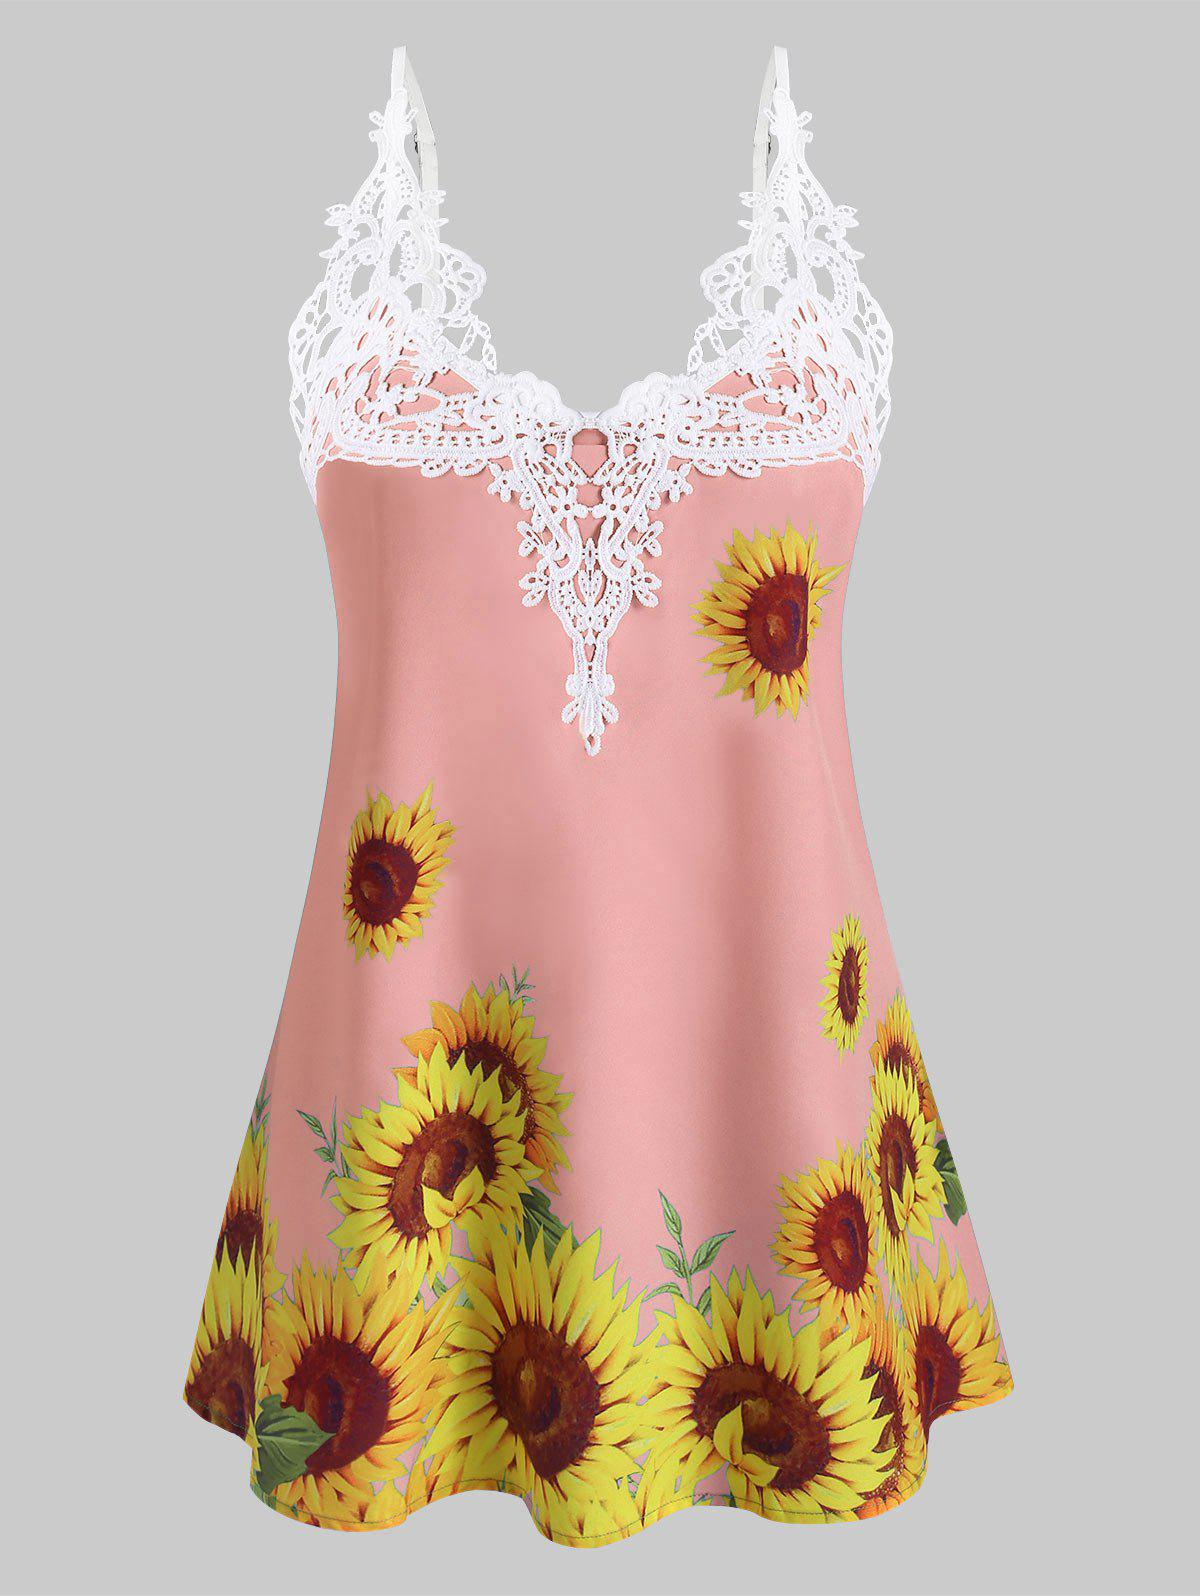 Crochet Lace Panel Sunflower Cami Top - LIGHT PINK S